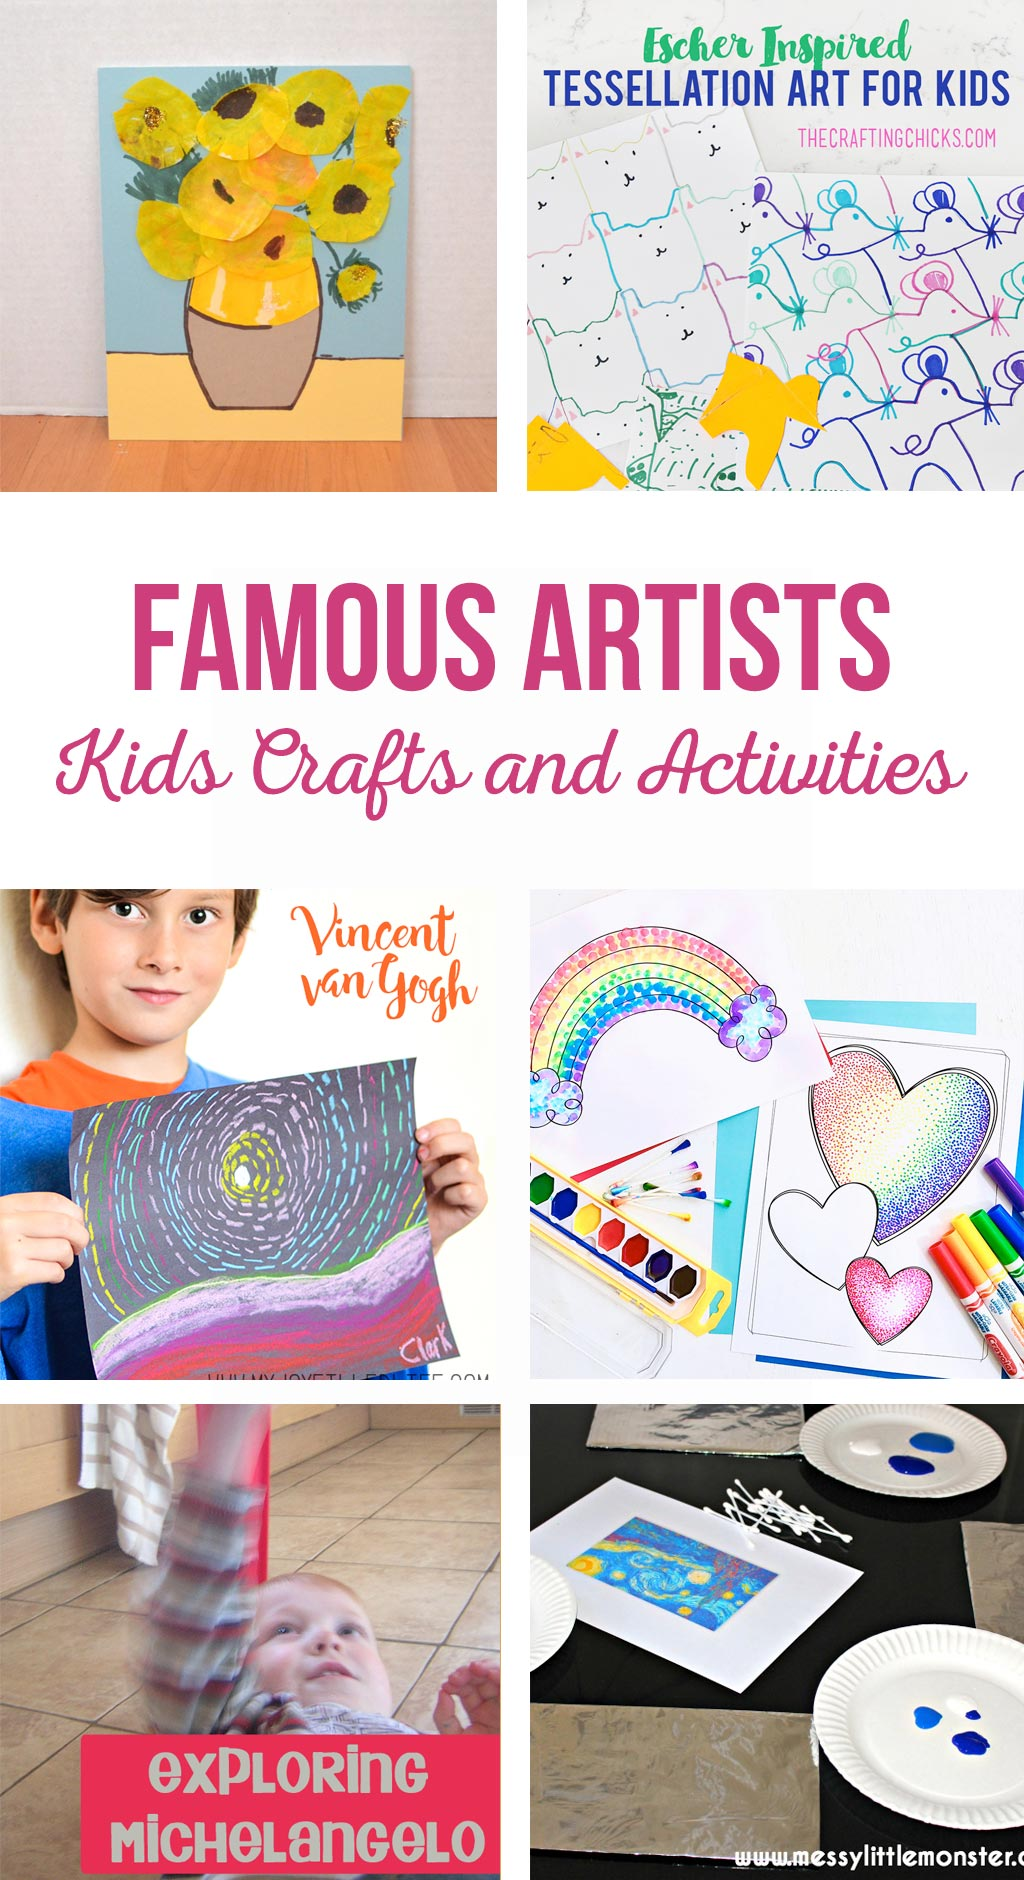 Famous Artists Kids Crafts and Activities | Teach kids about famous artists through fun activities and art projects.